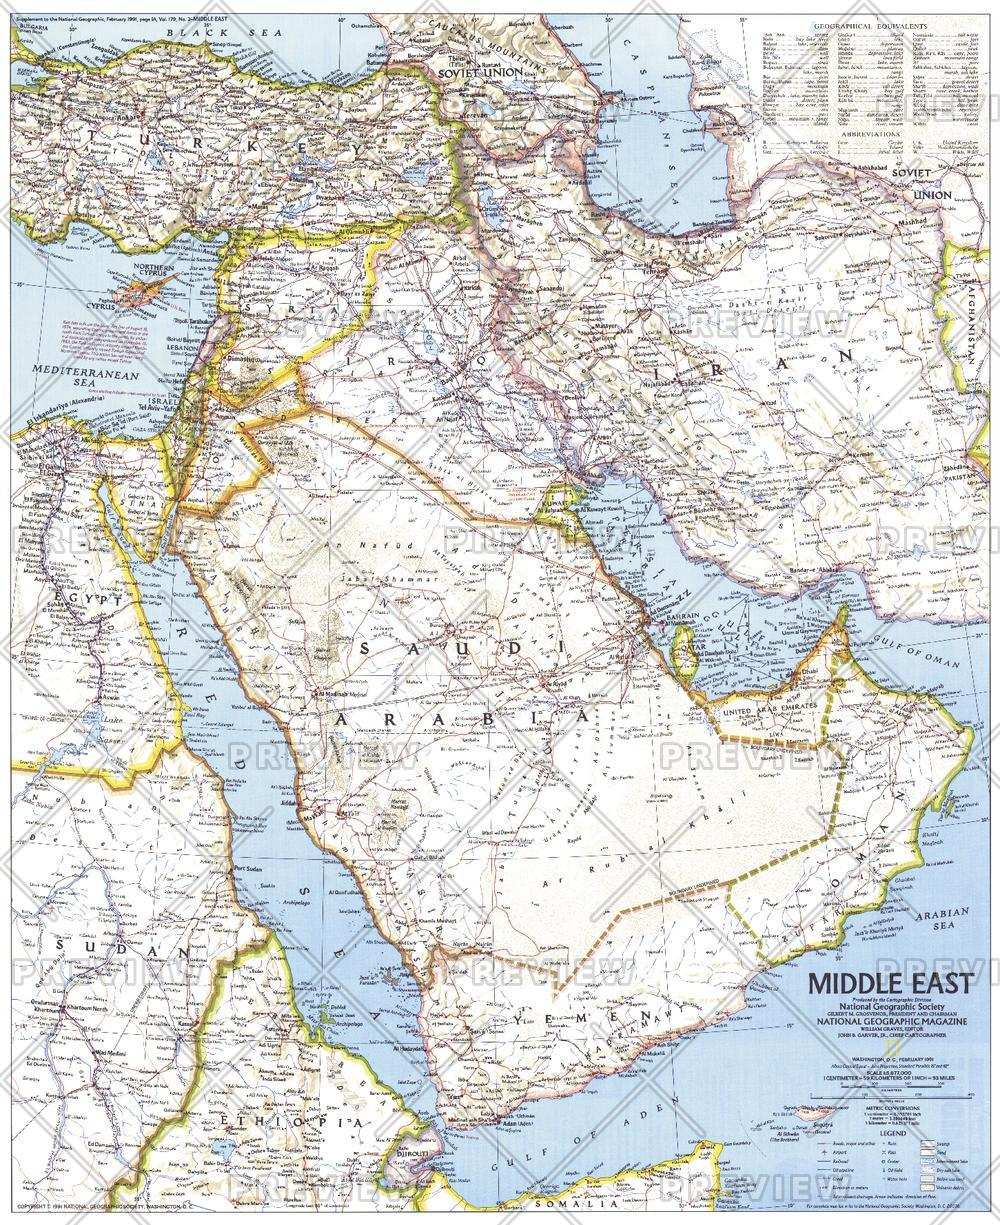 Middle East  -  Published 1991